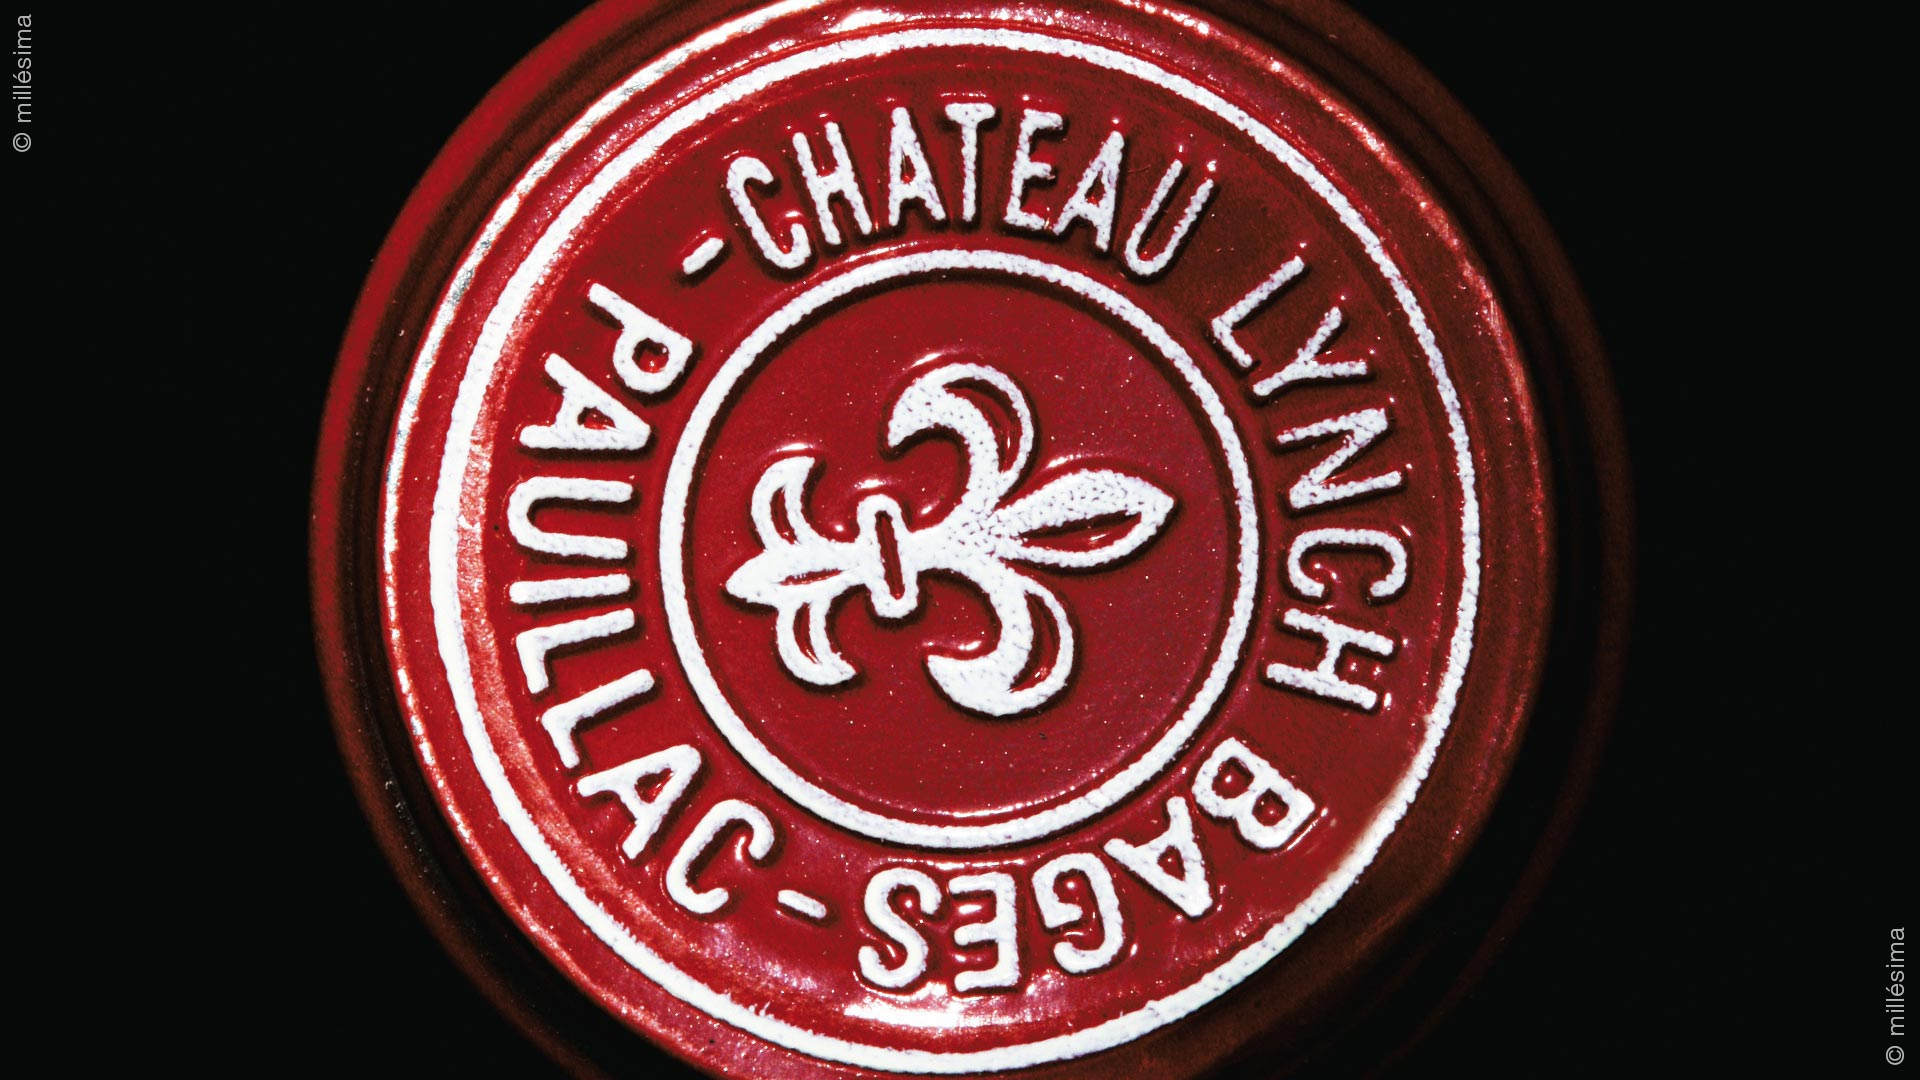 Chateau Lynch-Bages 2001 - 1